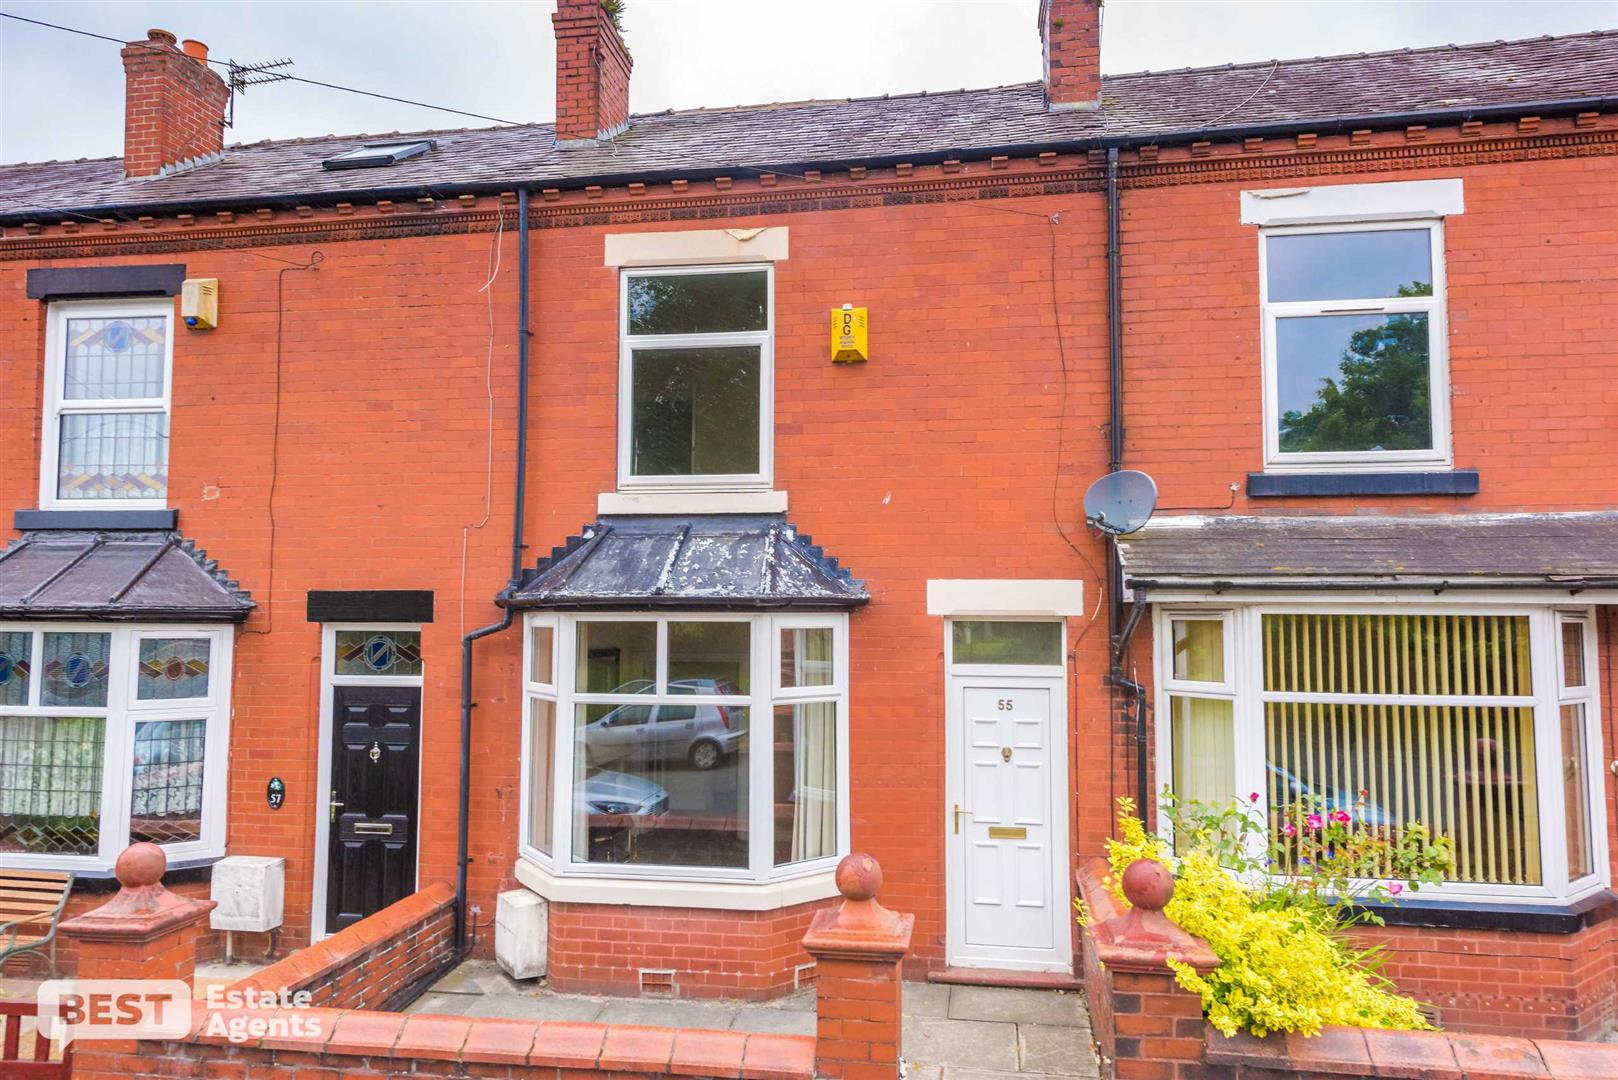 Douglas Street, Atherton, Greater Manchester BEST Estate Agents